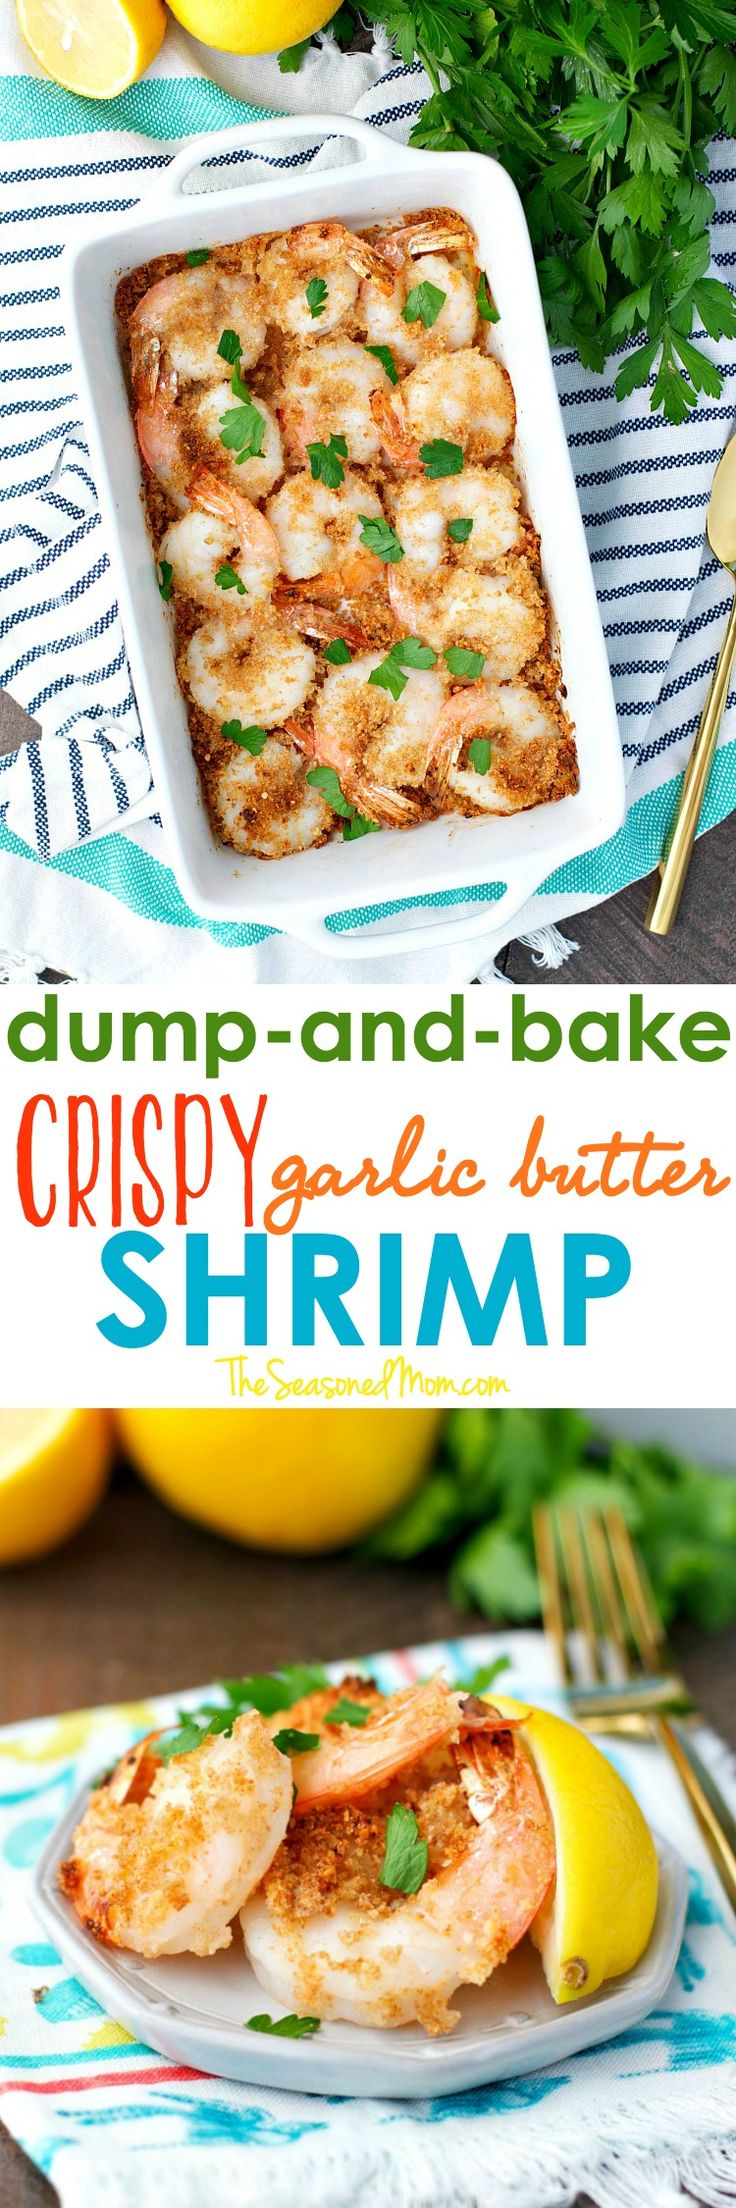 With just 5 ingredients and no prep work, this Dump and Bake Crispy Garlic Butter Shrimp is a healthy dinner or party appetizer that's ready in 15 minutes! #HealthyHeartPledge #SNPSweepstakes #ad